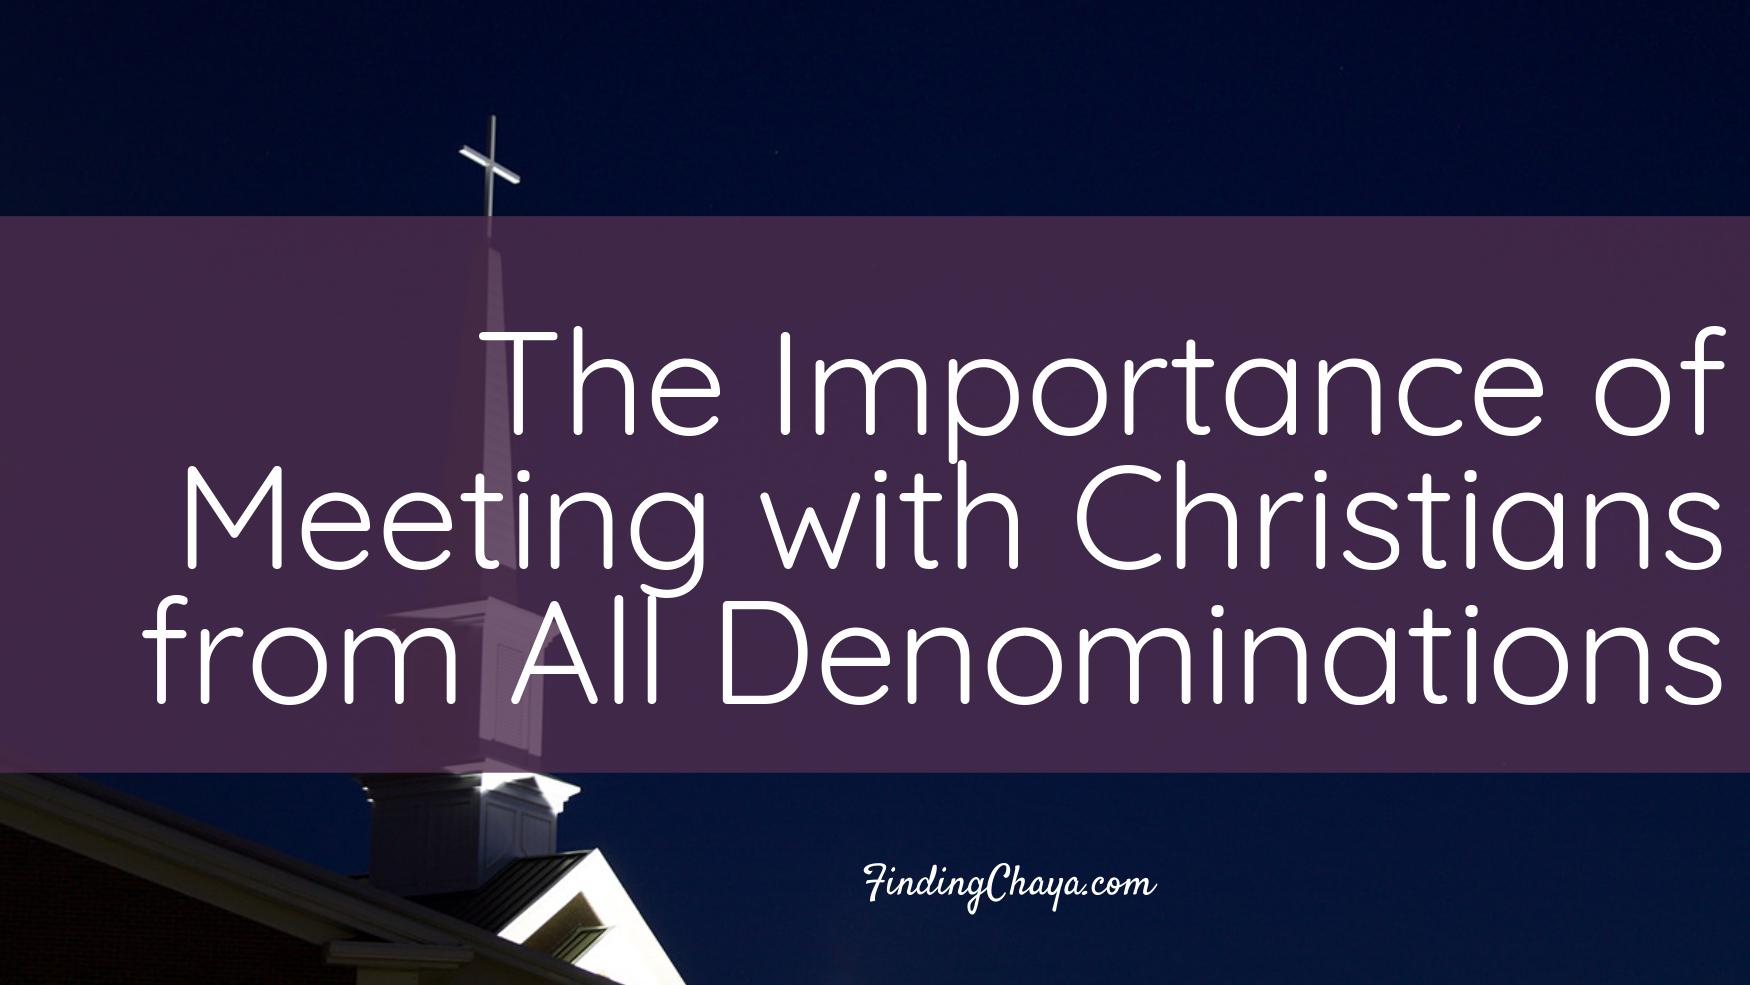 Why I Love My Workplace Fellowship || The Importance of Meeting with Christians from All Denominations